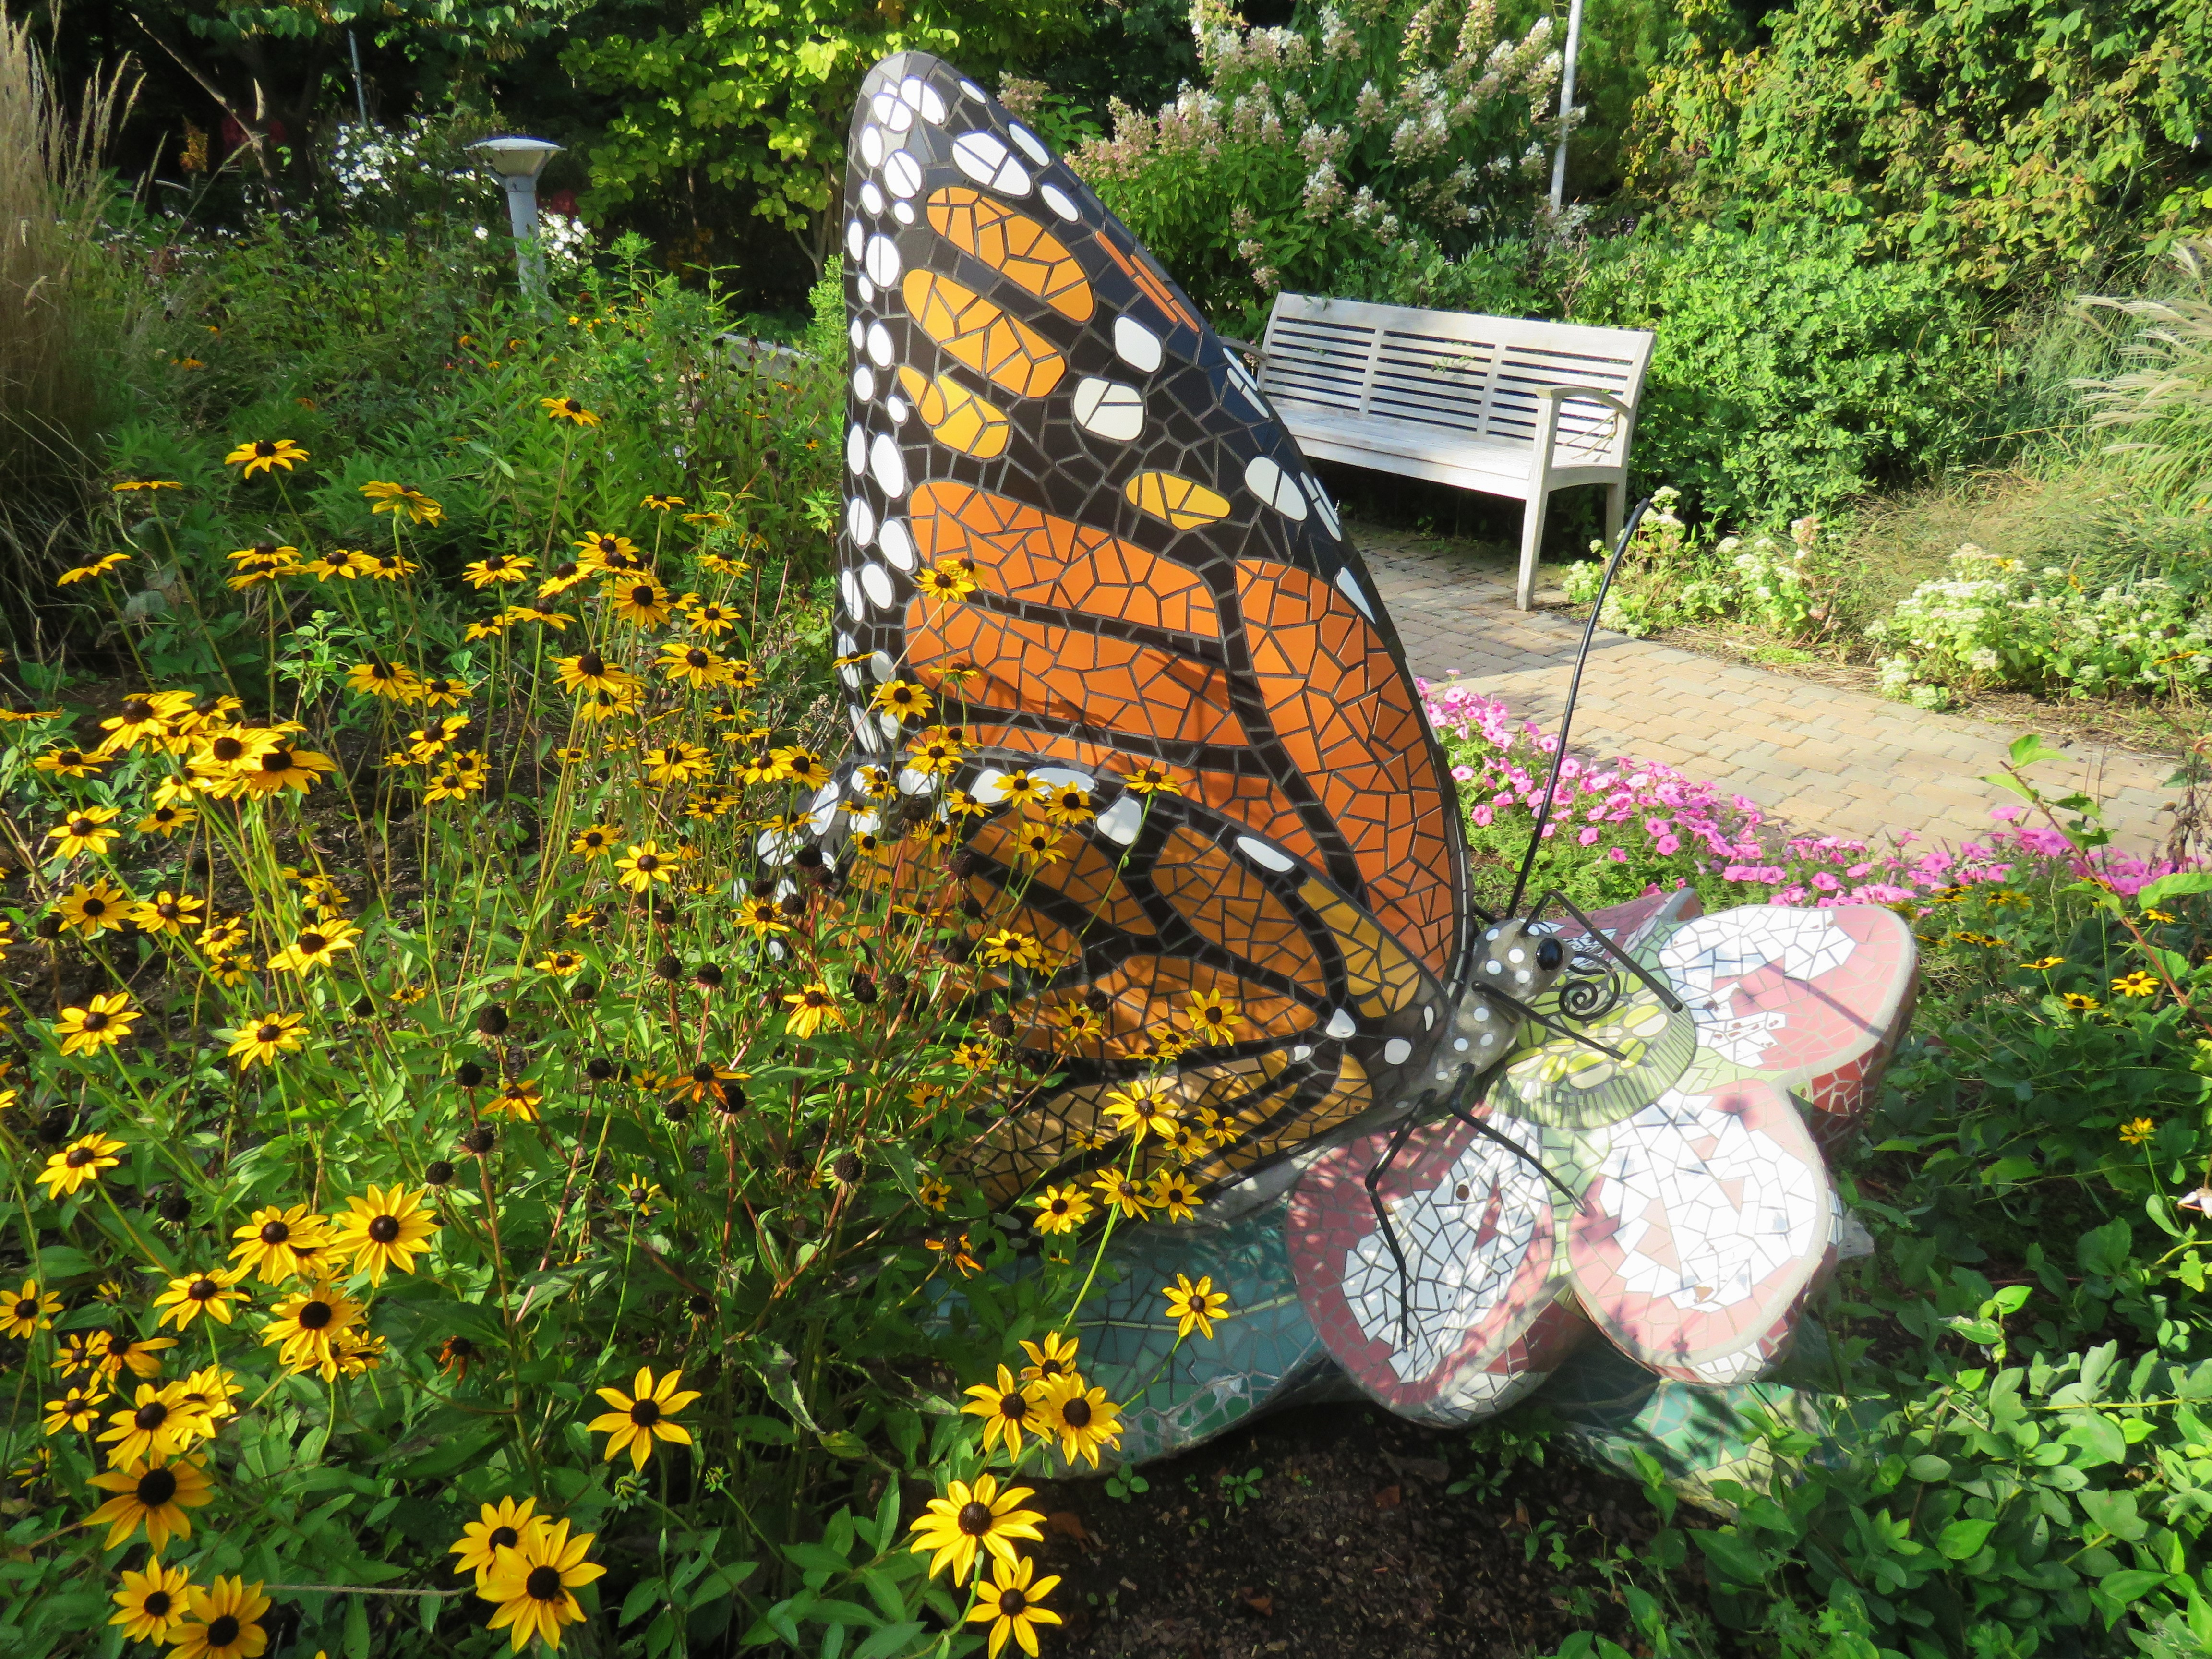 A large sculpture of a monarch butterfly crafted from a mosaic of tiles sits in the midst of a garden. A bench stands in the background near a brick paver path. Black-eyed susans and other plants surround the sculpture.